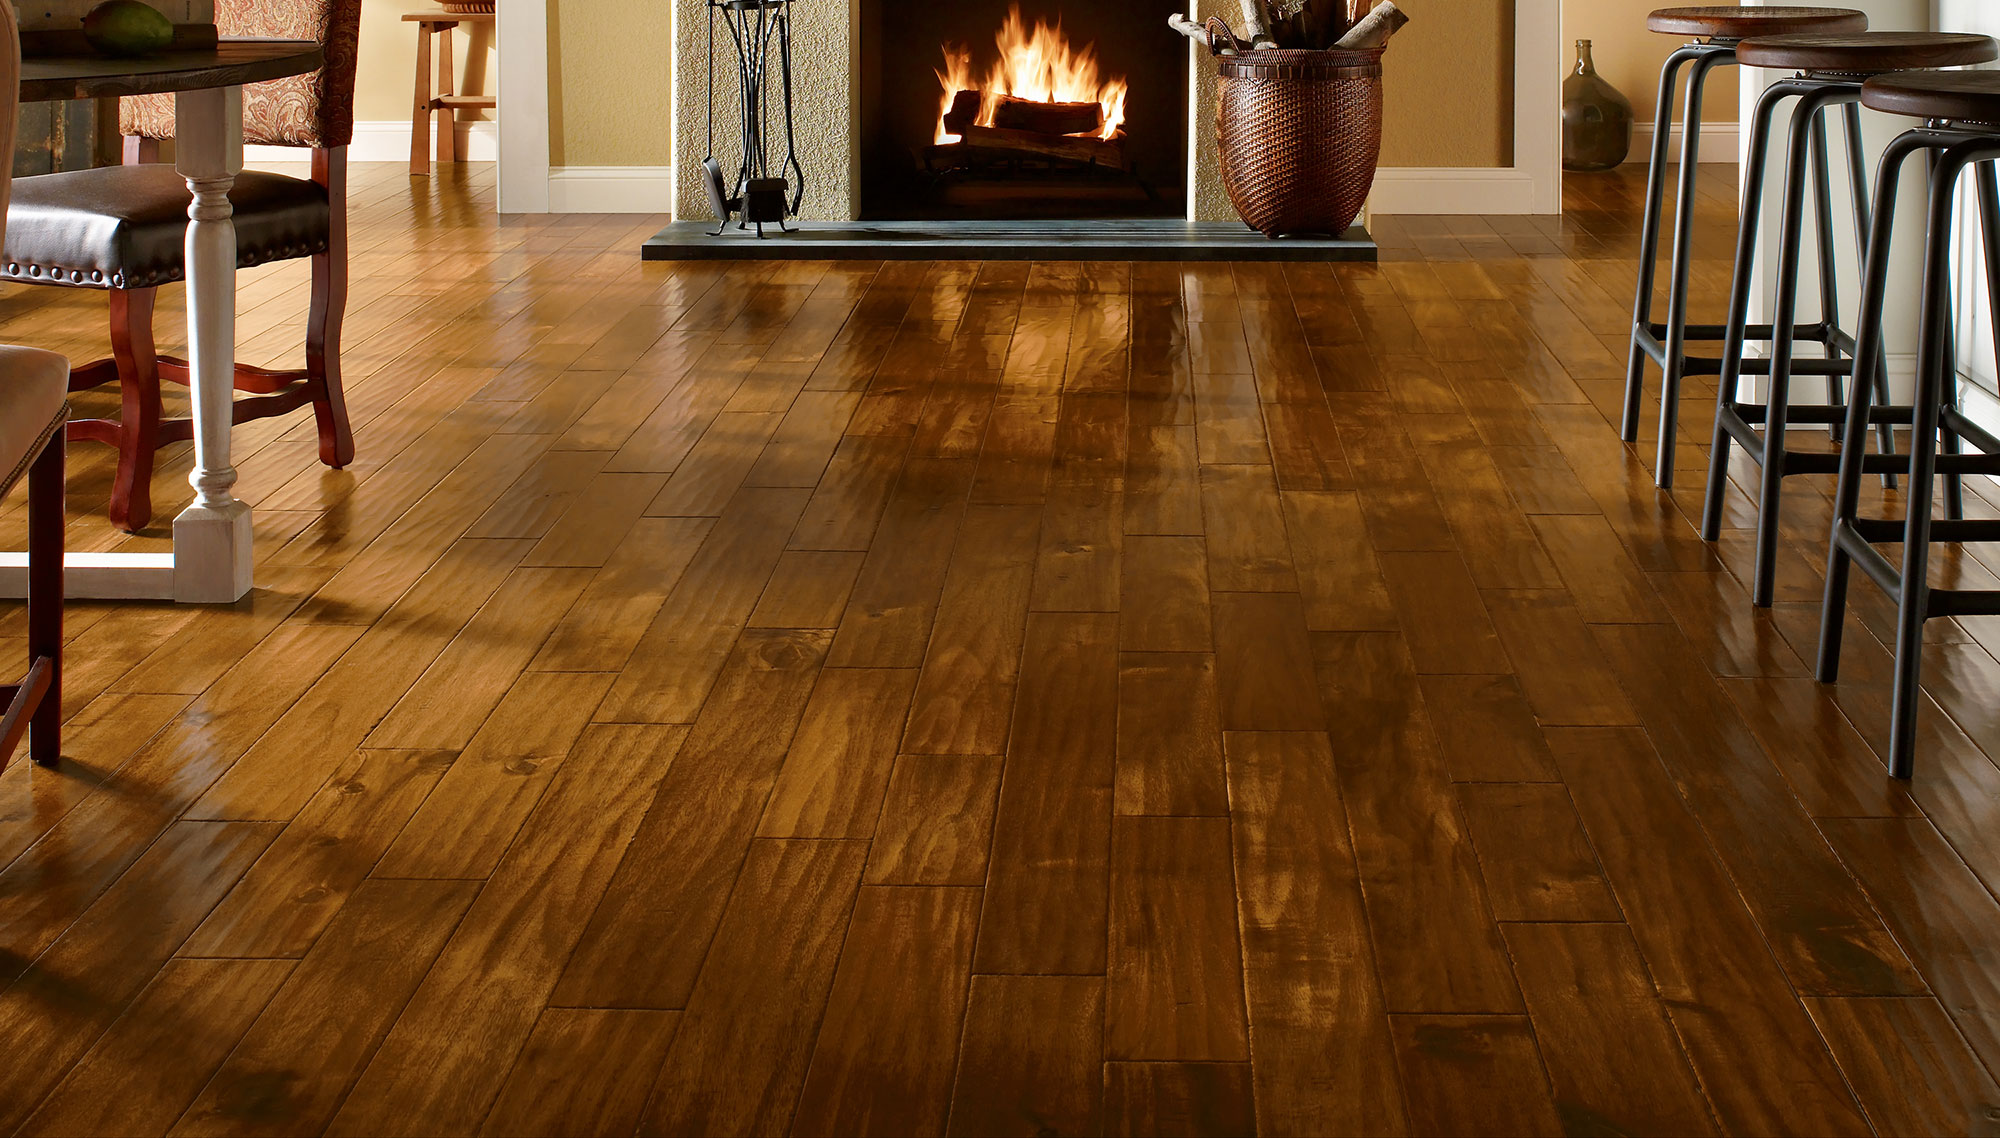 hard wood floors bruce laminate flooring bruce hardwood flooring OKRYUKF